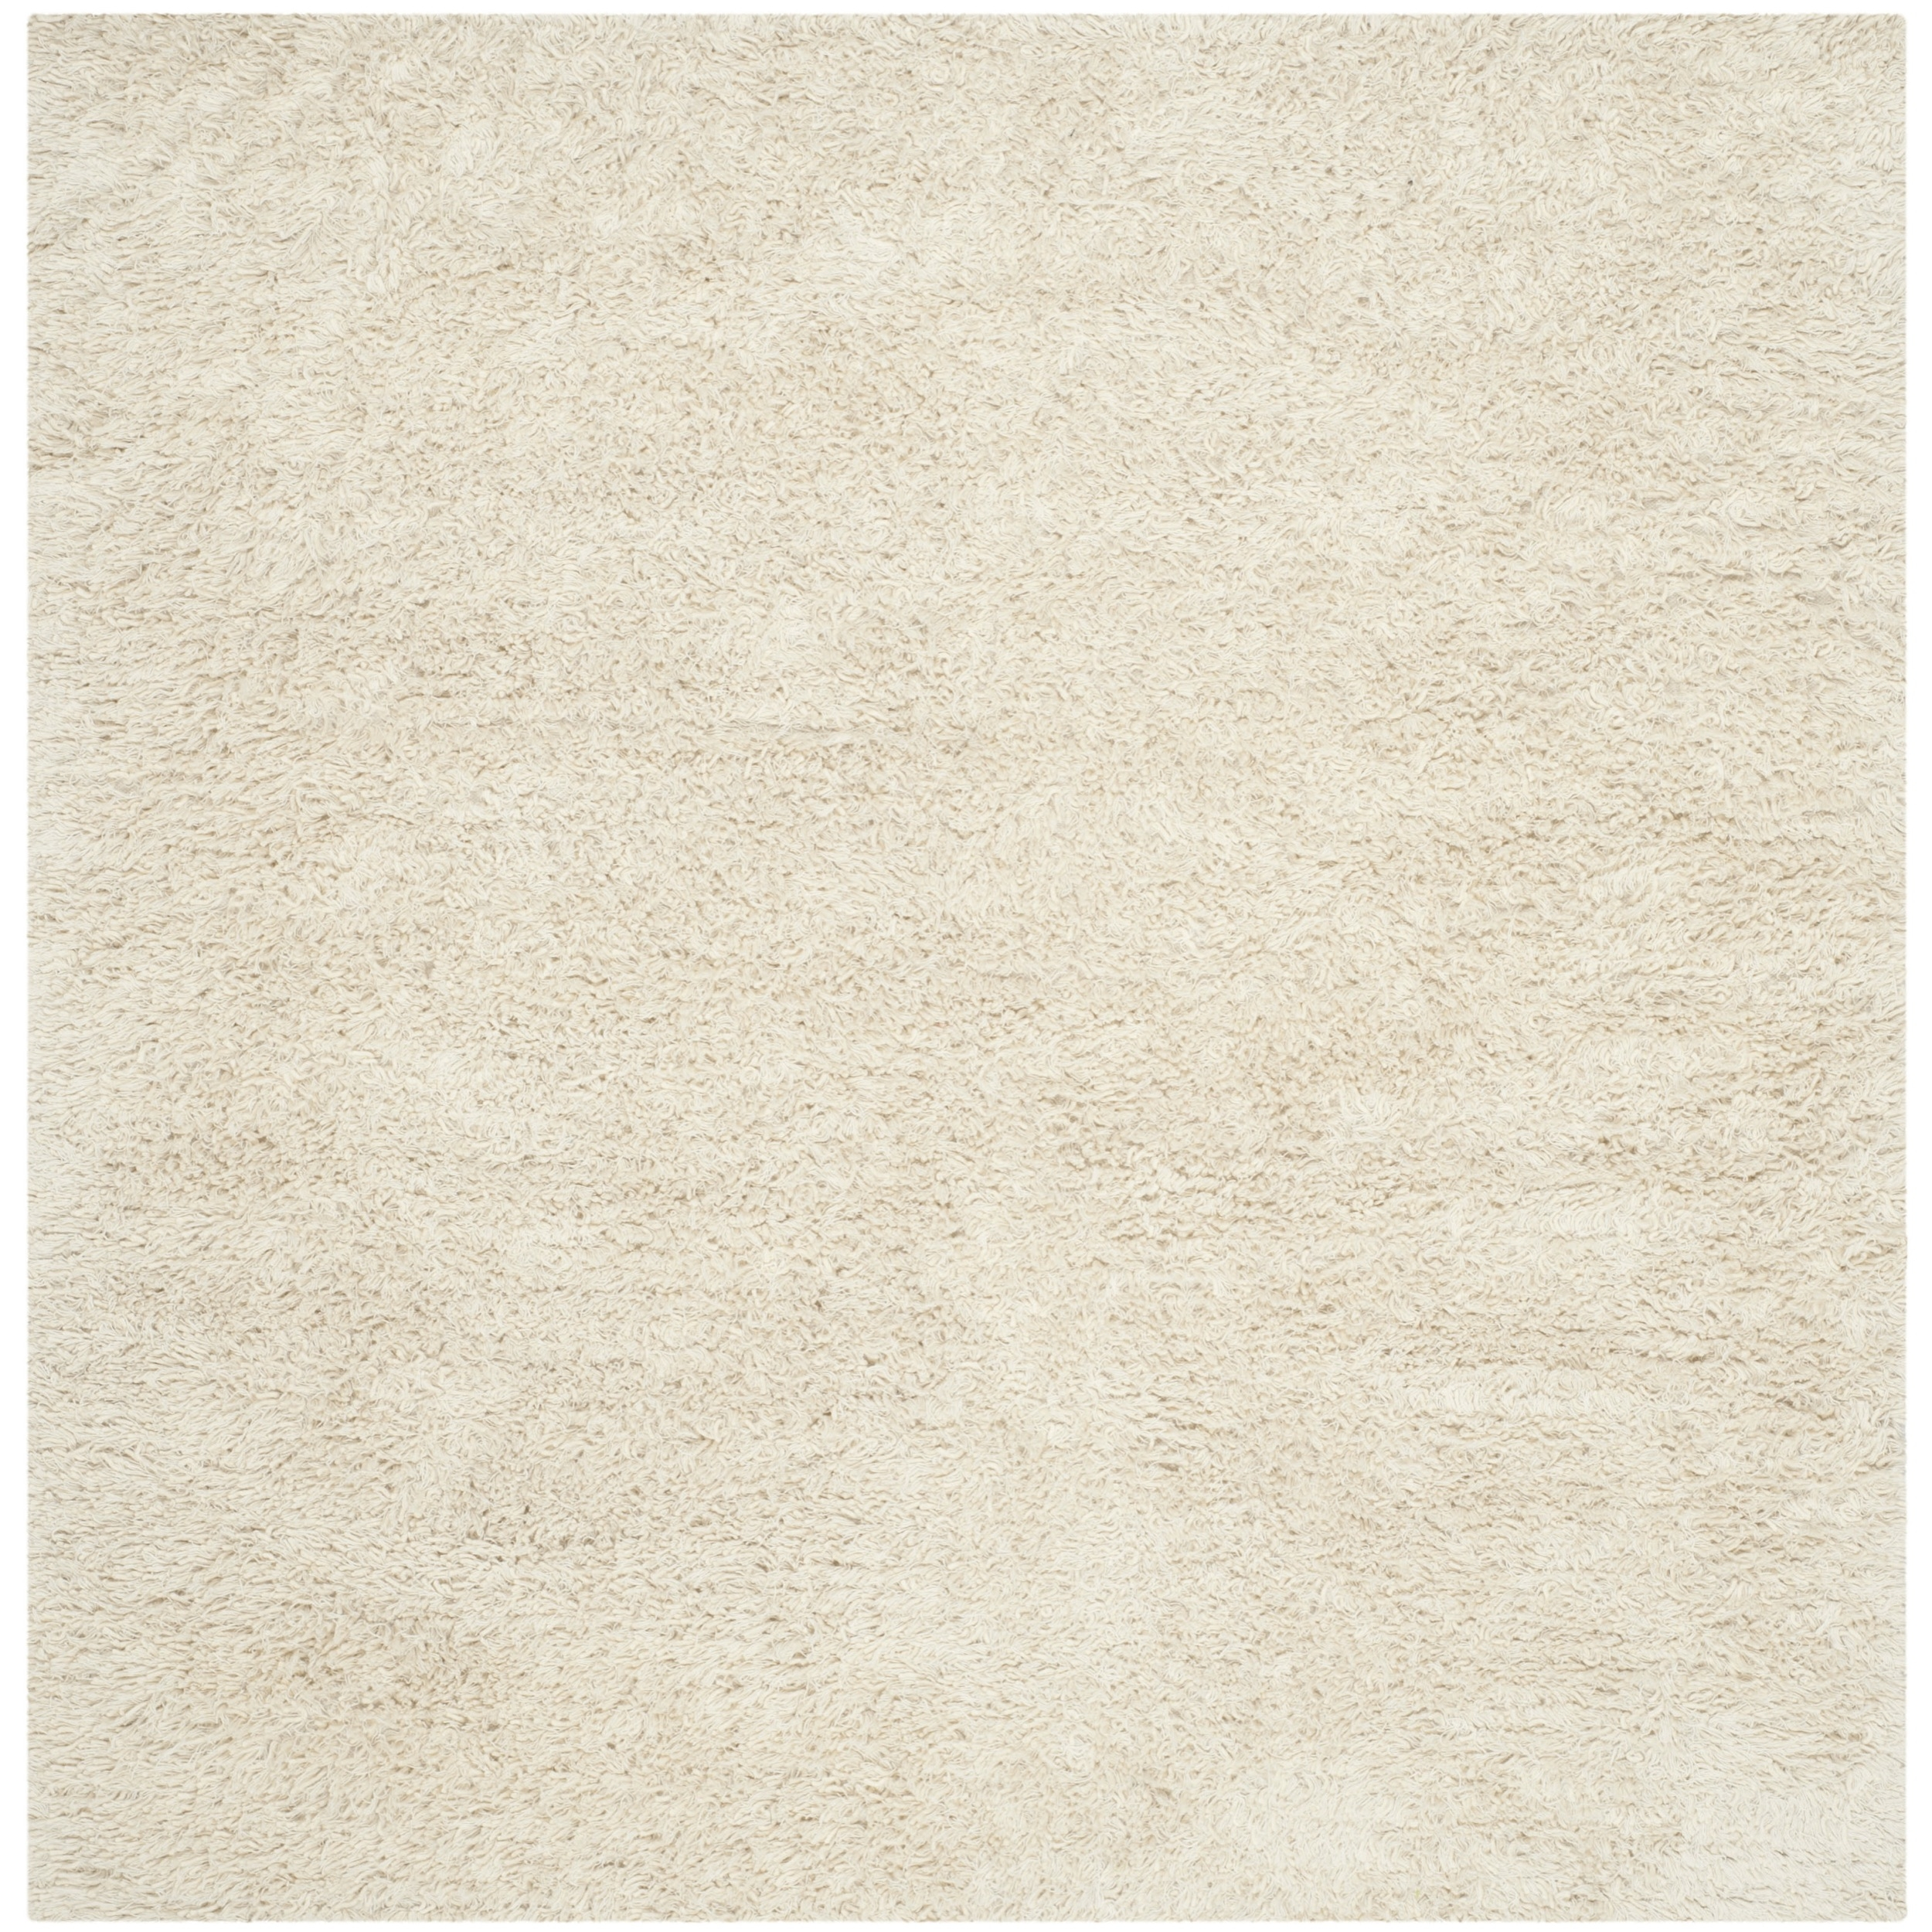 Safavieh Hand Tufted Ivory Plush Shag Wool Area Rugs Sg731a Ebay Regarding Hand Tufted Wool Area Rugs (#11 of 15)